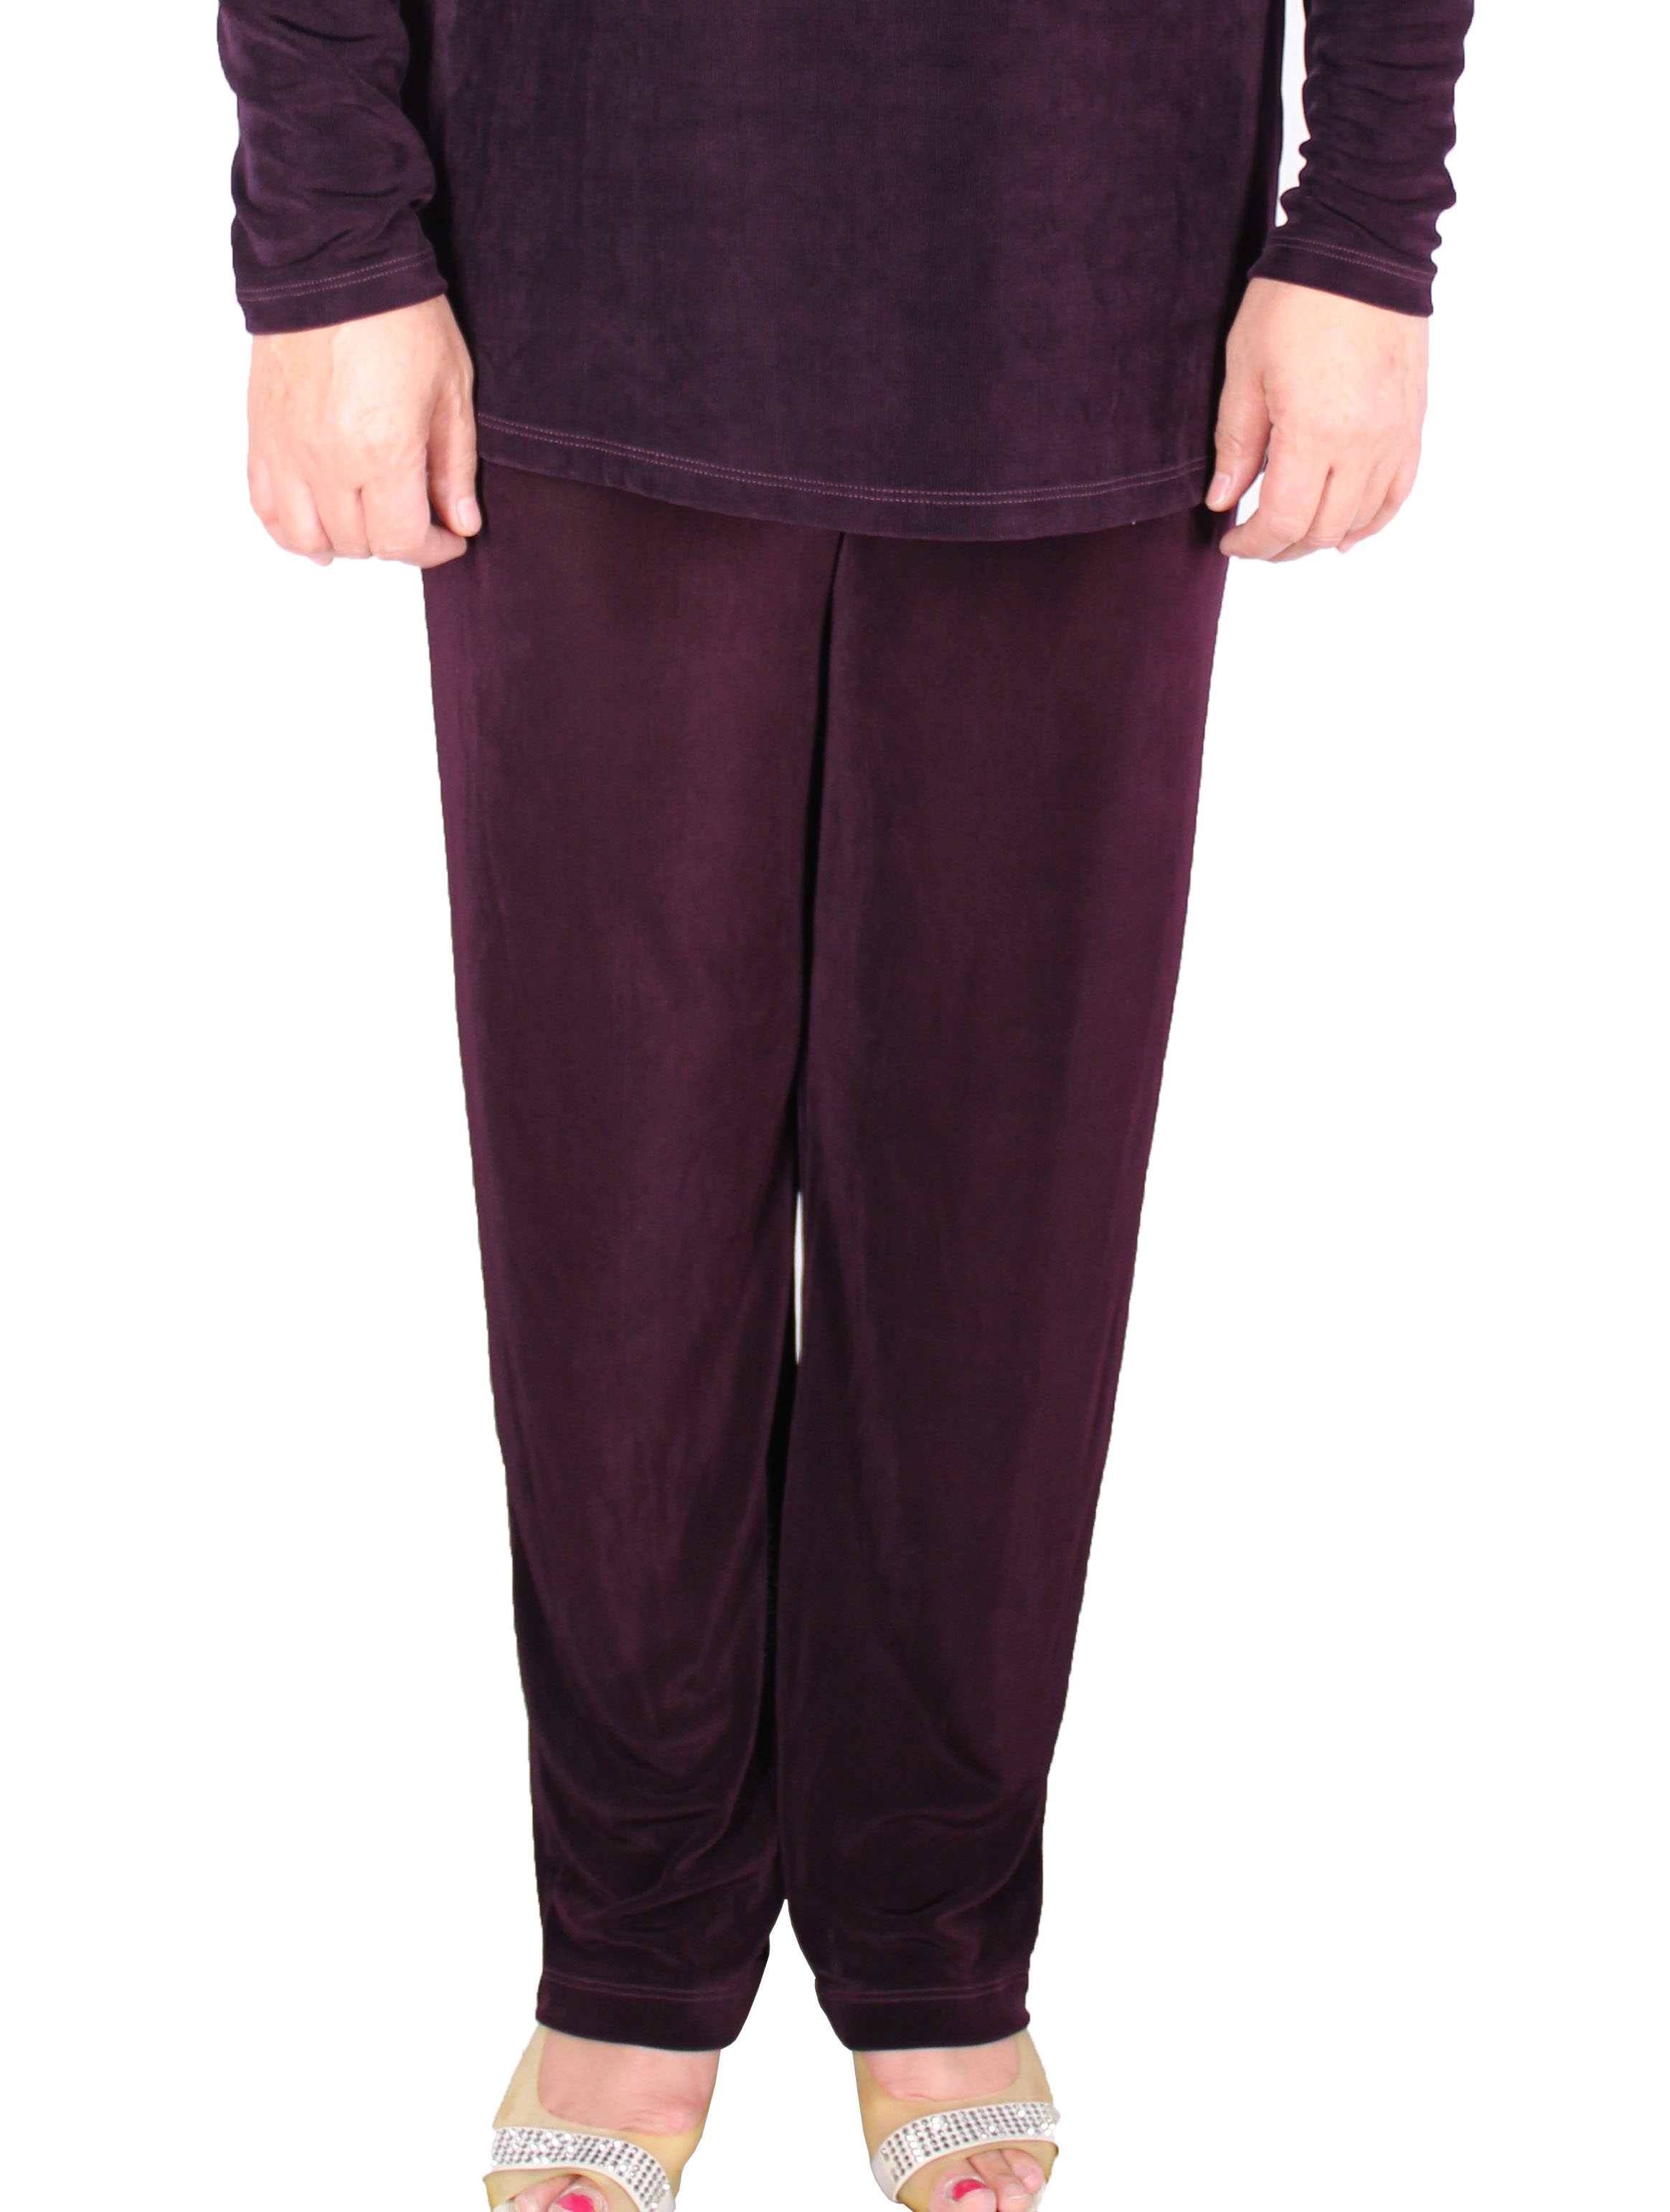 Women Slinky Long Pants (H012-13)